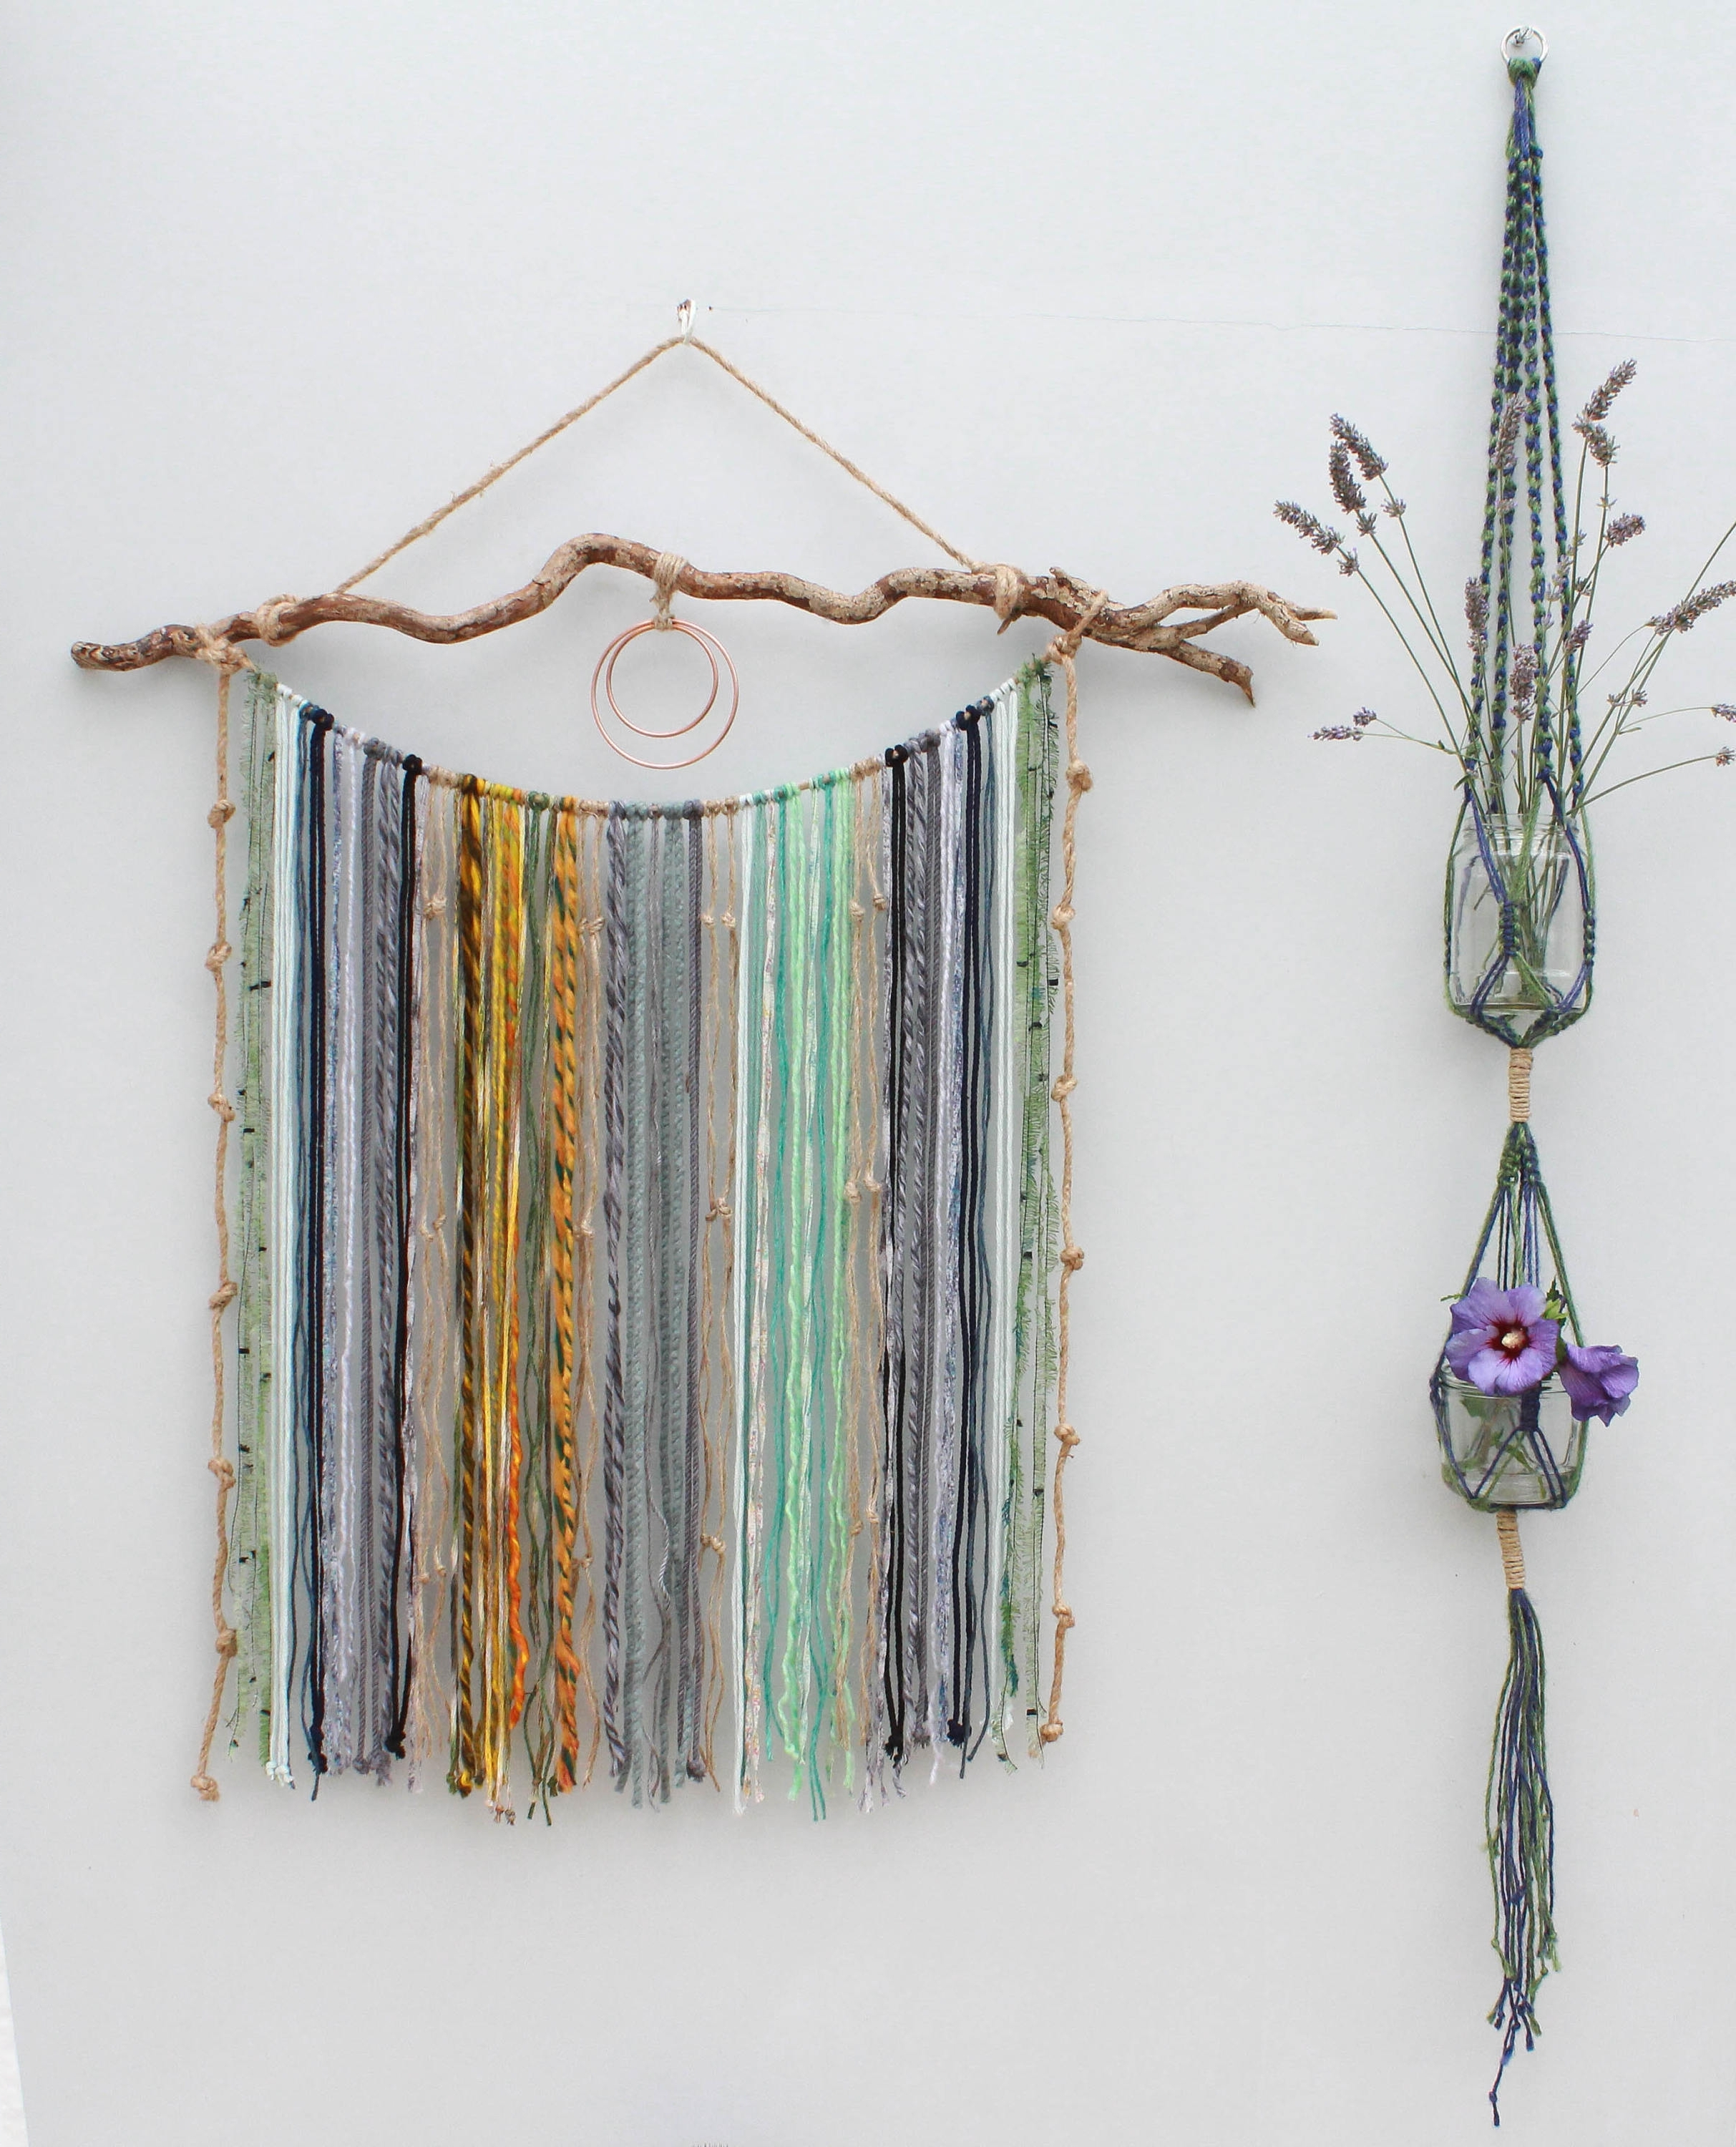 Large Macrame Yarn Wall Hanging On Driftwood/ Mixed Media Hanging In Best And Newest Yarn Wall Art (View 13 of 15)